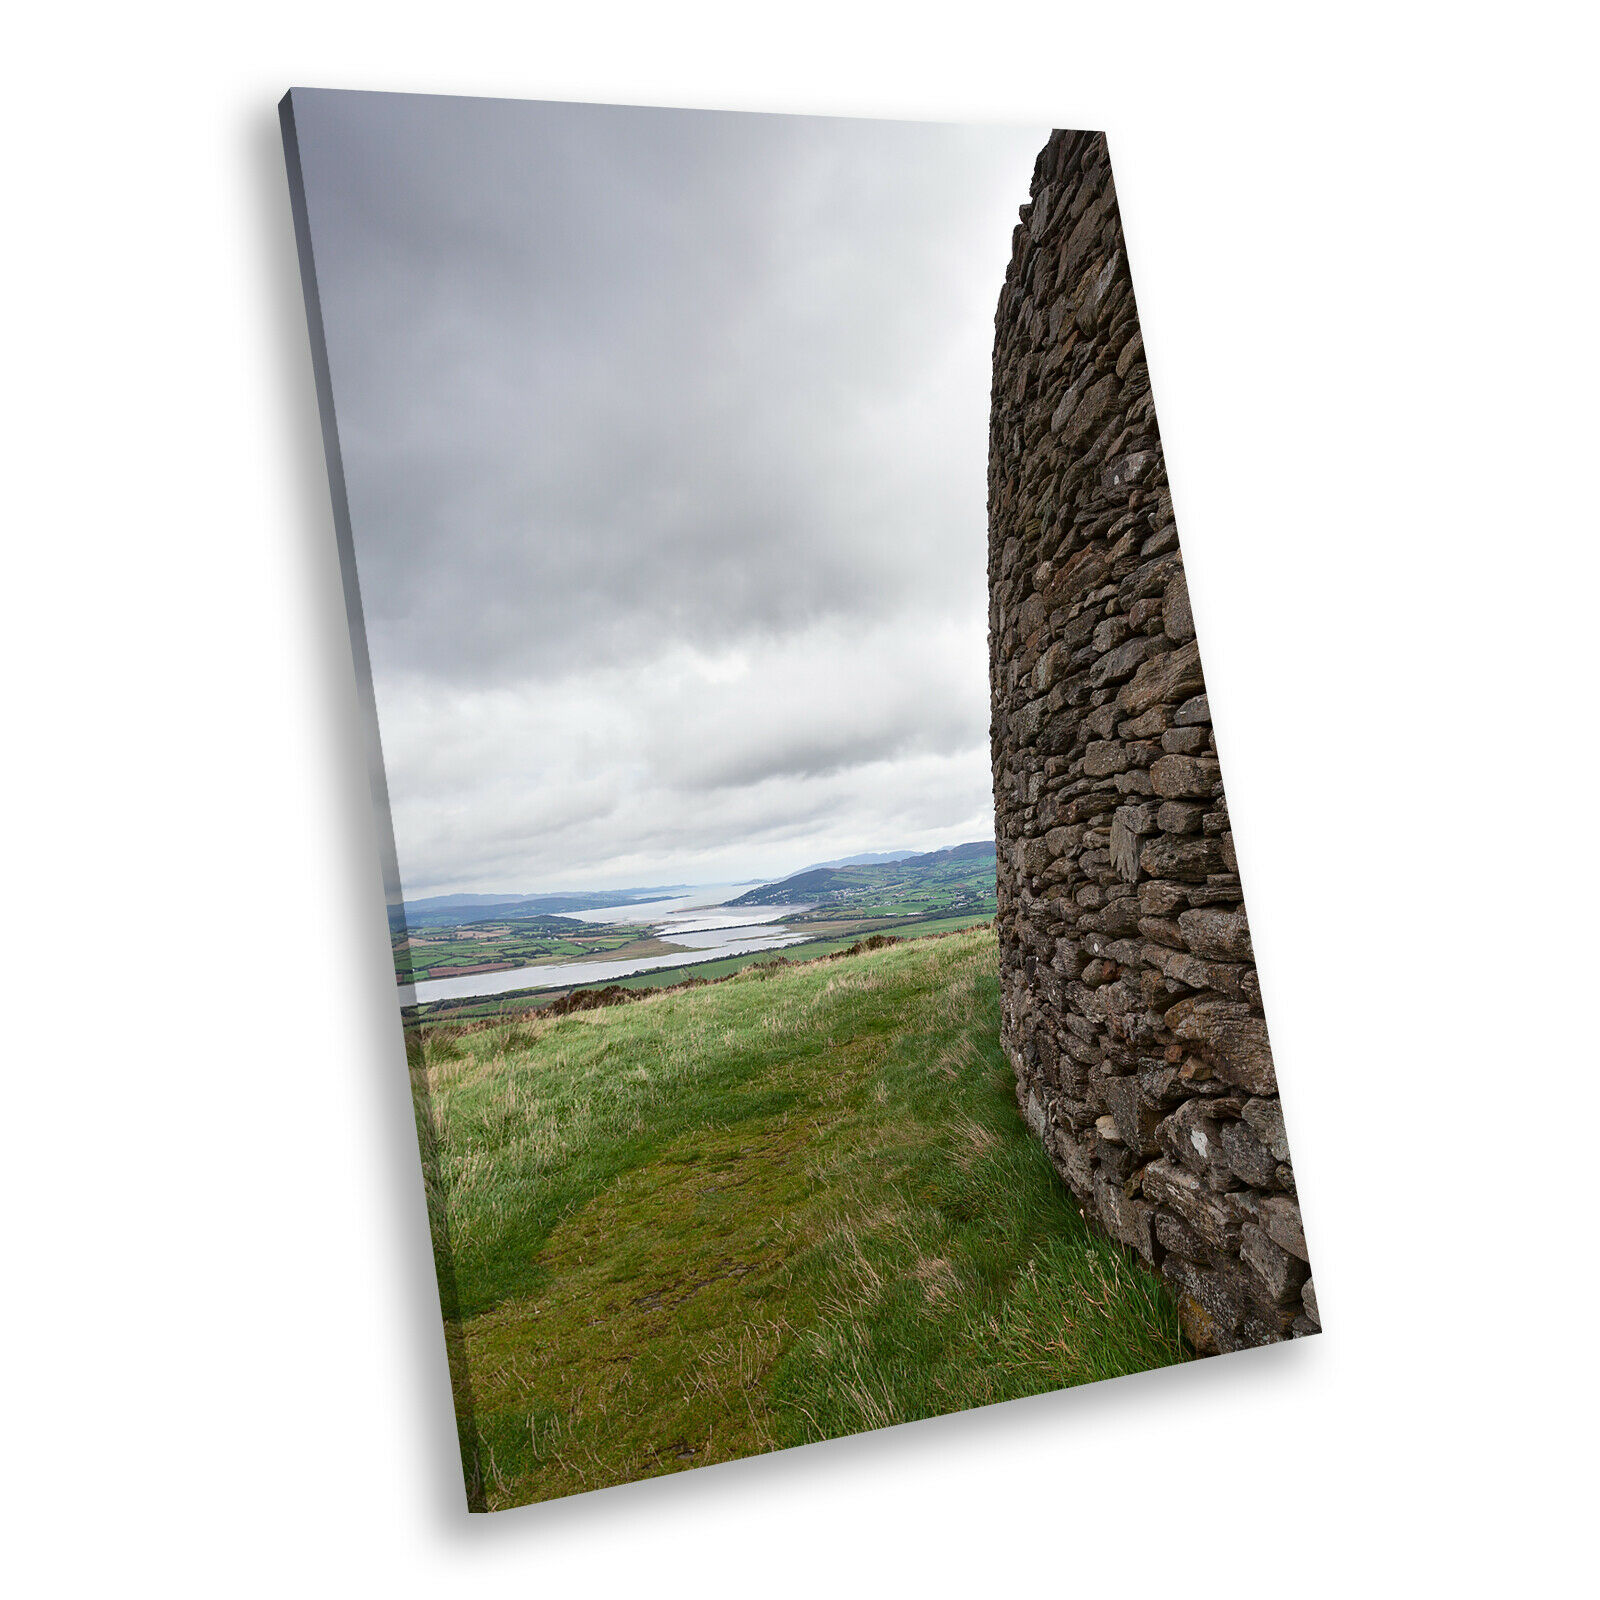 Grün grau Stone Ireland Portrait Scenic Canvas Wall Art Large Picture Prints